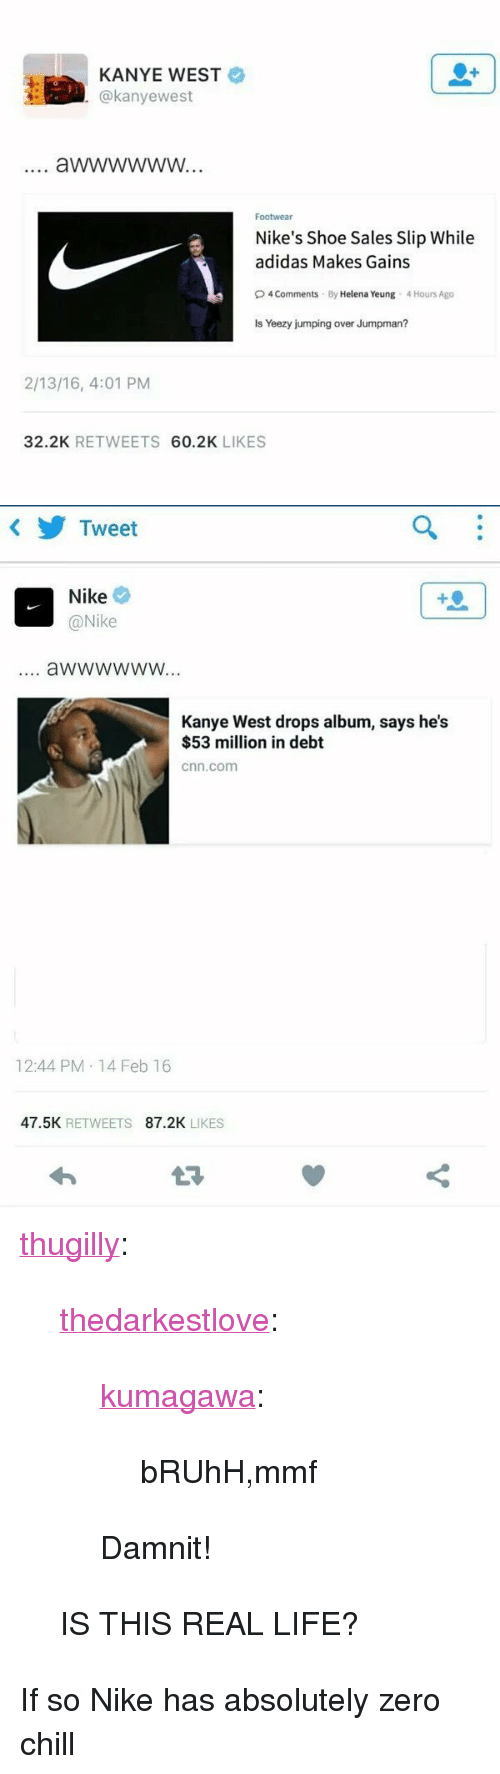 "53 Million: KANYE WEST  @kanyewest  Footwear  Nike's Shoe Sales Slip While  adidas Makes Gains  O4 Comments By Helena Yeung 4 Hours Ago  Is Yeezy jumping over Jumpman?  2/13/16, 4:01 PM  32.2K RETWEETS 60.2K LIKES   Tweet  Nike  @Nike  4  aWwwwwW...  Kanye West drops album, says he's  $53 million in debt  cnn.com  12:44 PM 14 Feb 16  47.5K RETWEETS 87.2K LIKES <p><a class=""tumblr_blog"" href=""http://thugilly.tumblr.com/post/139344119488"">thugilly</a>:</p> <blockquote> <p><a class=""tumblr_blog"" href=""http://thedarkestlove.tumblr.com/post/139344021532"">thedarkestlove</a>:</p> <blockquote> <p><a class=""tumblr_blog"" href=""http://kumagawa.tumblr.com/post/139339444294"">kumagawa</a>:</p> <blockquote> <p>bRUhH,mmf</p> </blockquote> <p>Damnit!</p> </blockquote> <p>IS THIS REAL LIFE?</p> </blockquote>  <p>If so Nike has absolutely zero chill</p>"